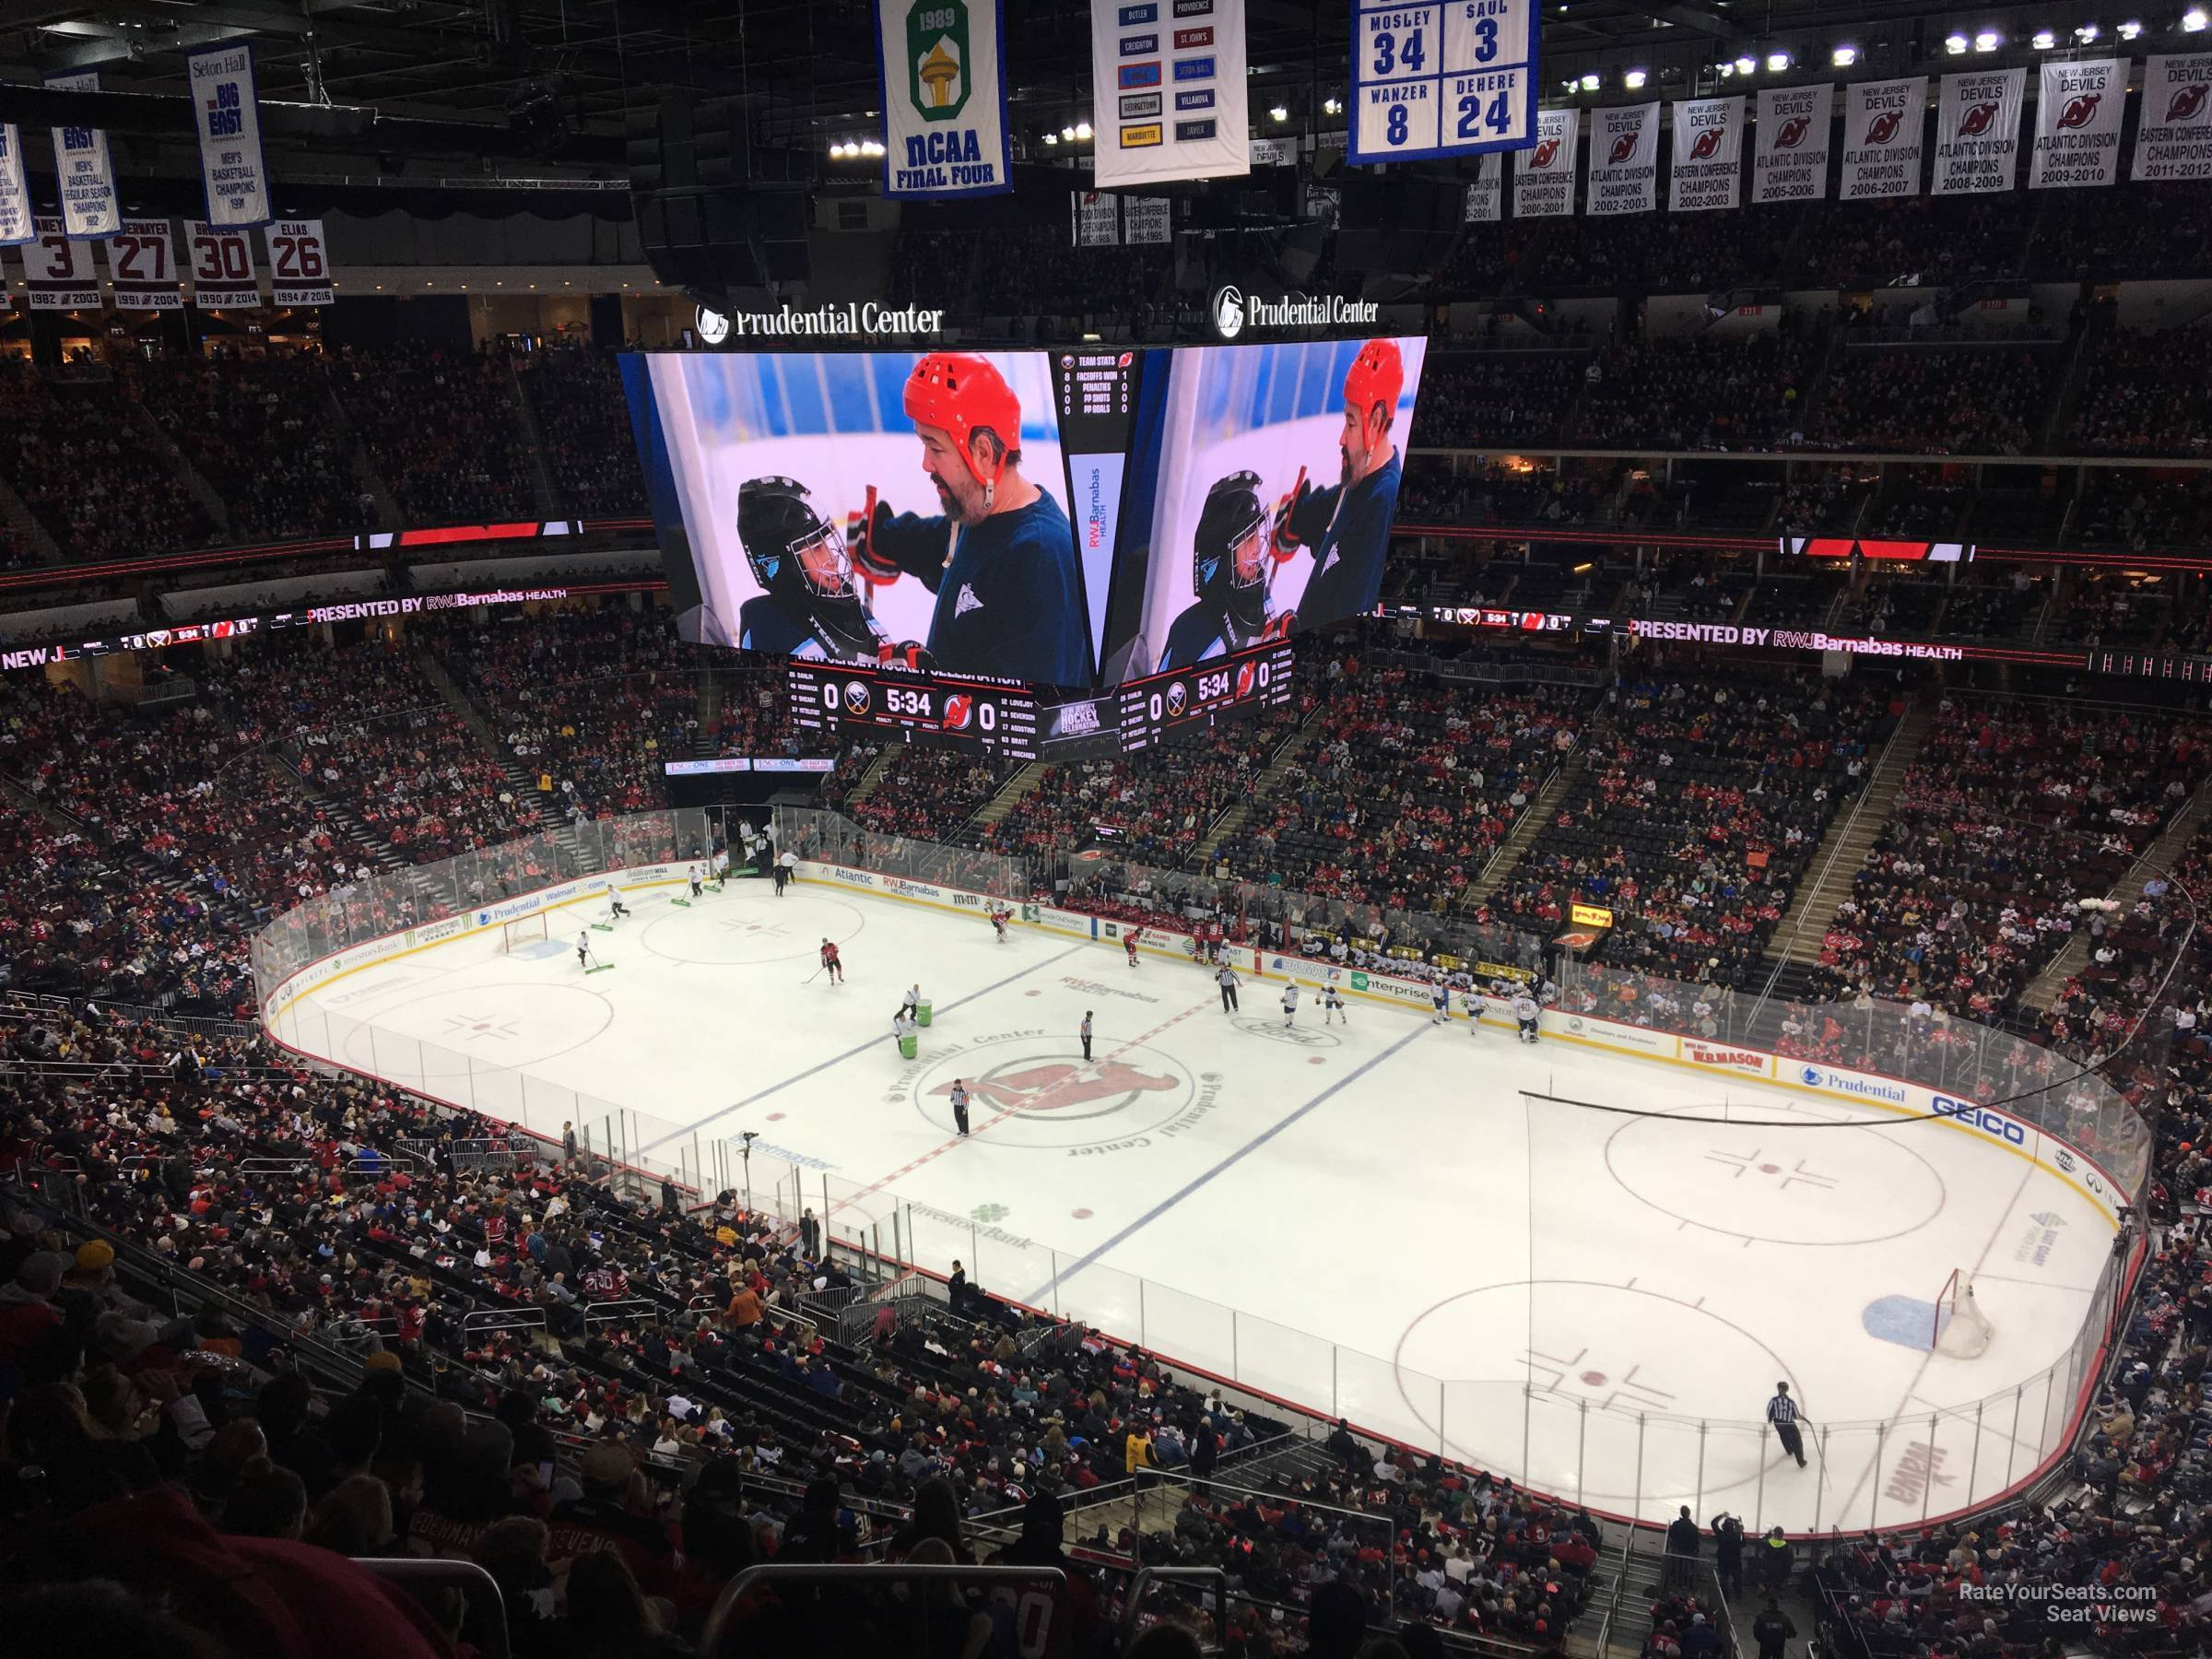 New Jersey Devils Seat View for Prudential Center Section 132, Row 6